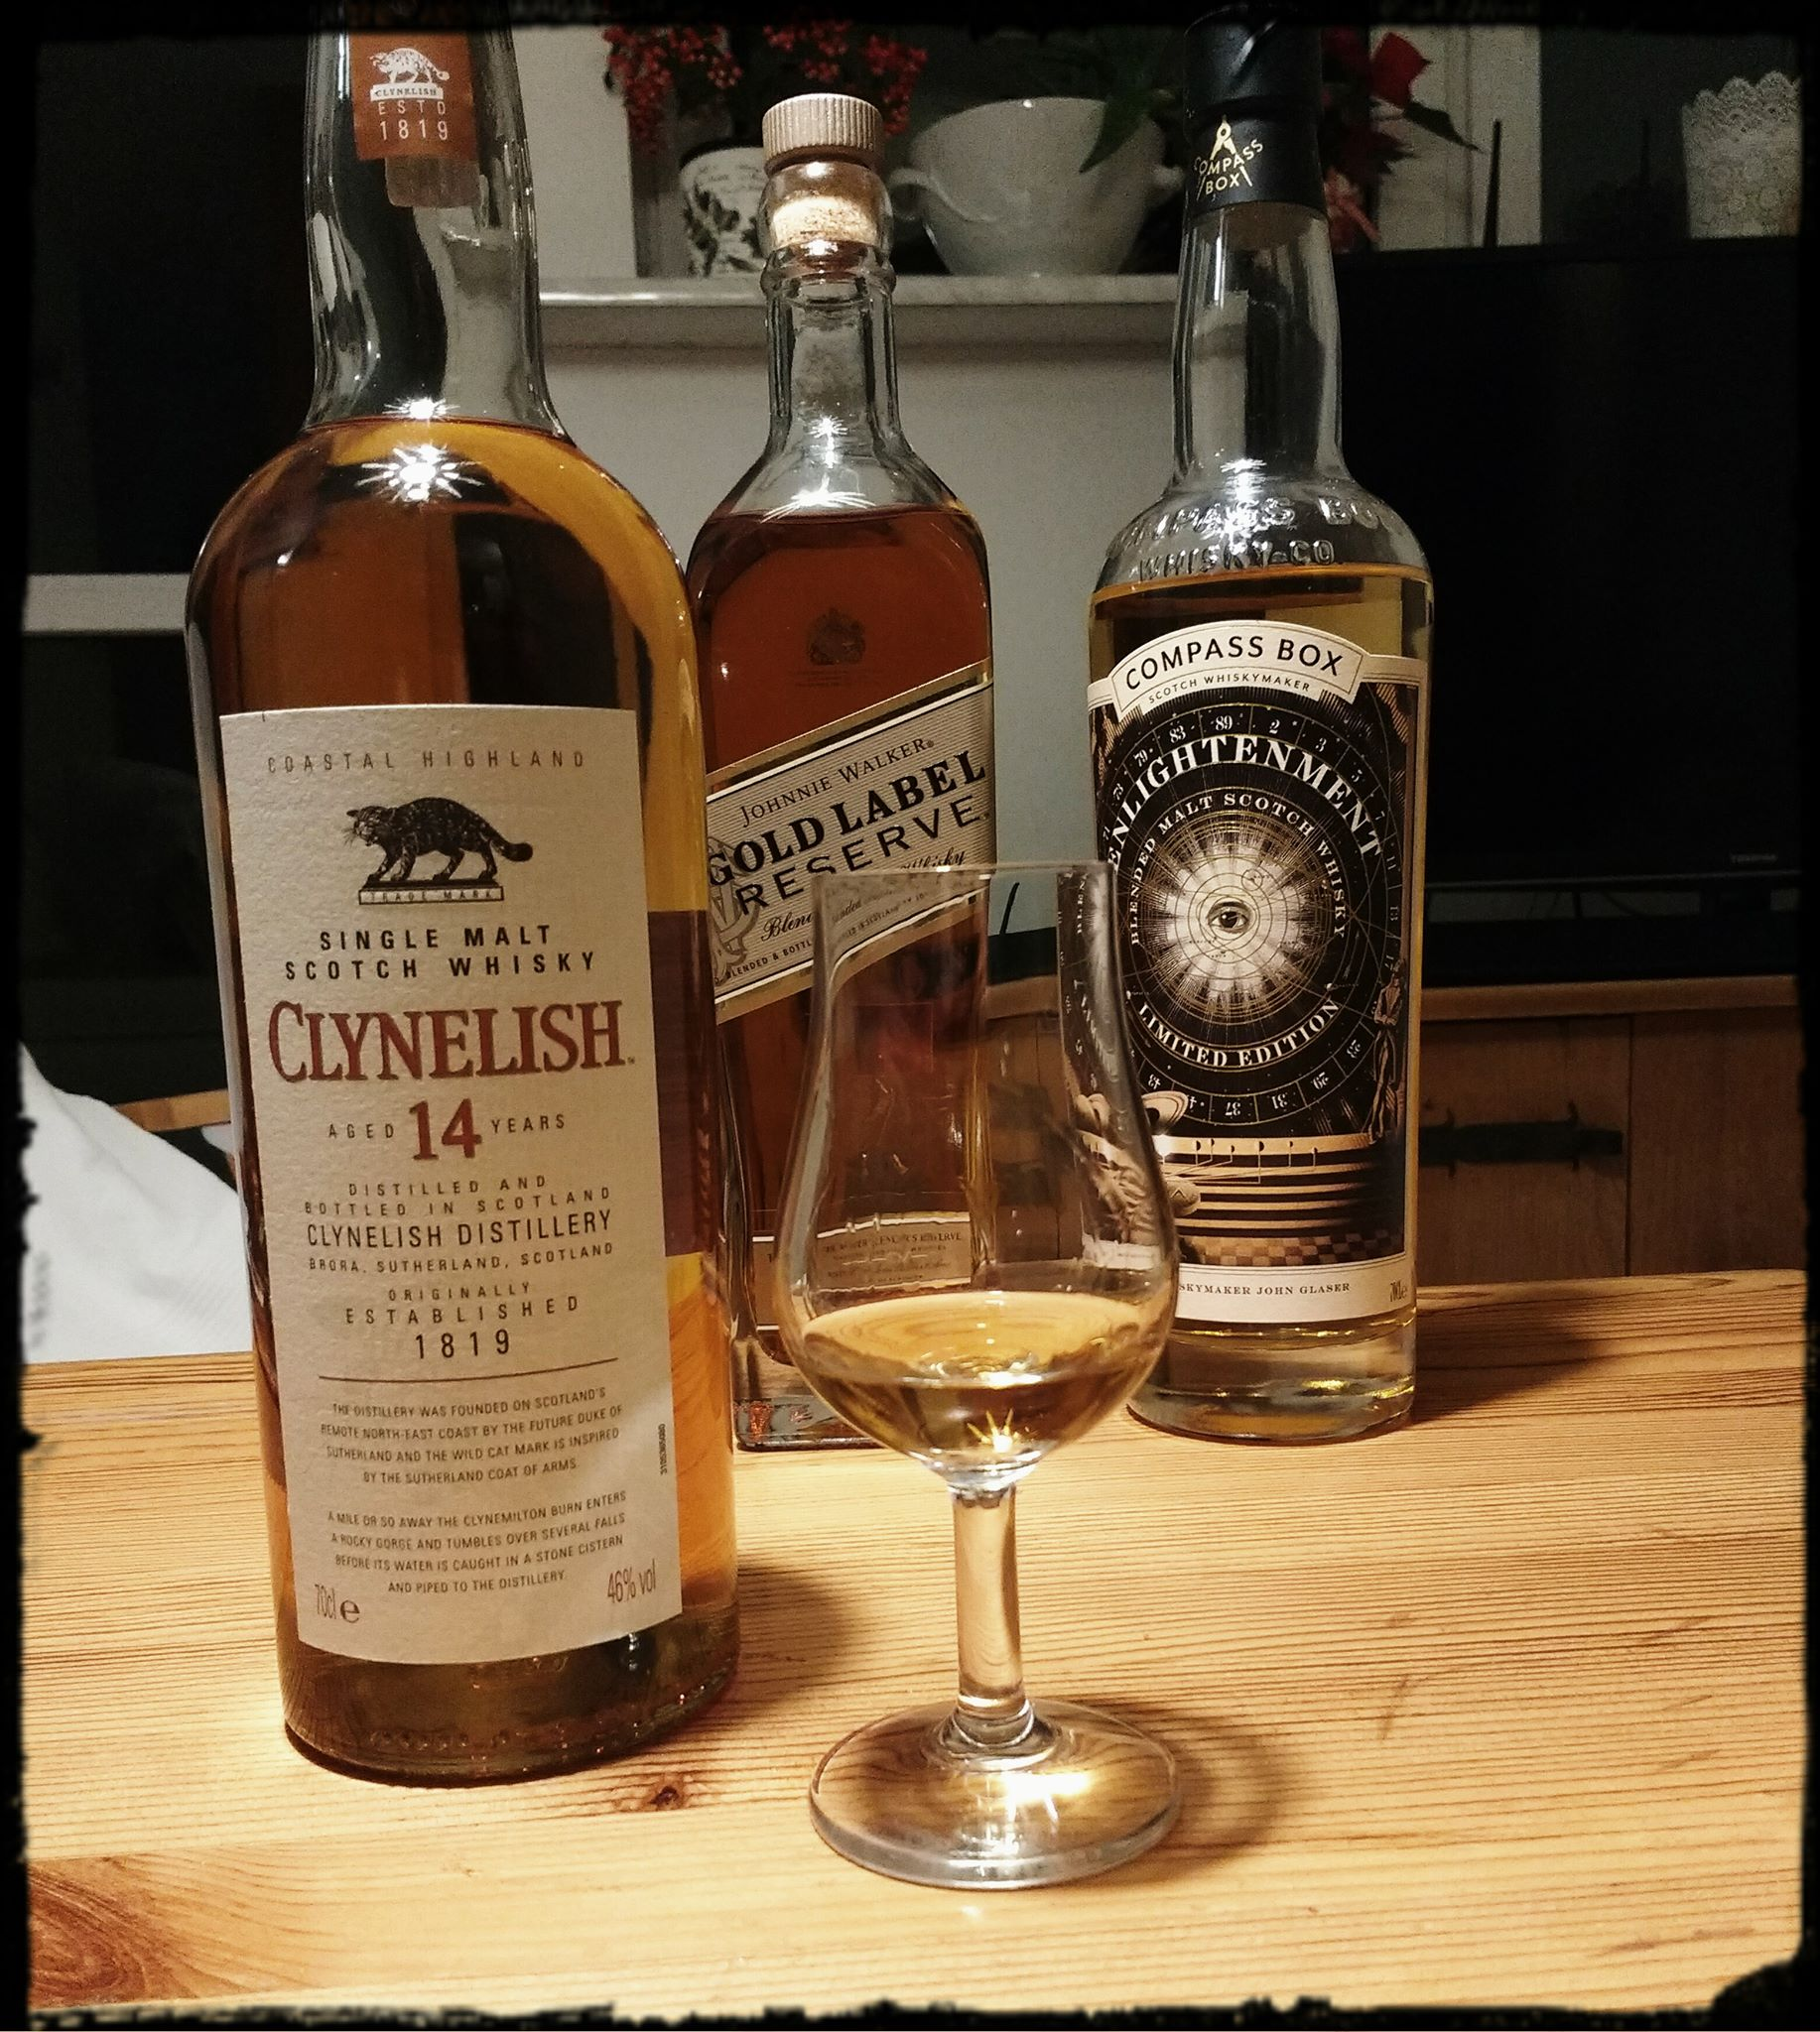 Clynelish 14 yo, JW Gold Label Reserve, Compass Box Enlightenment